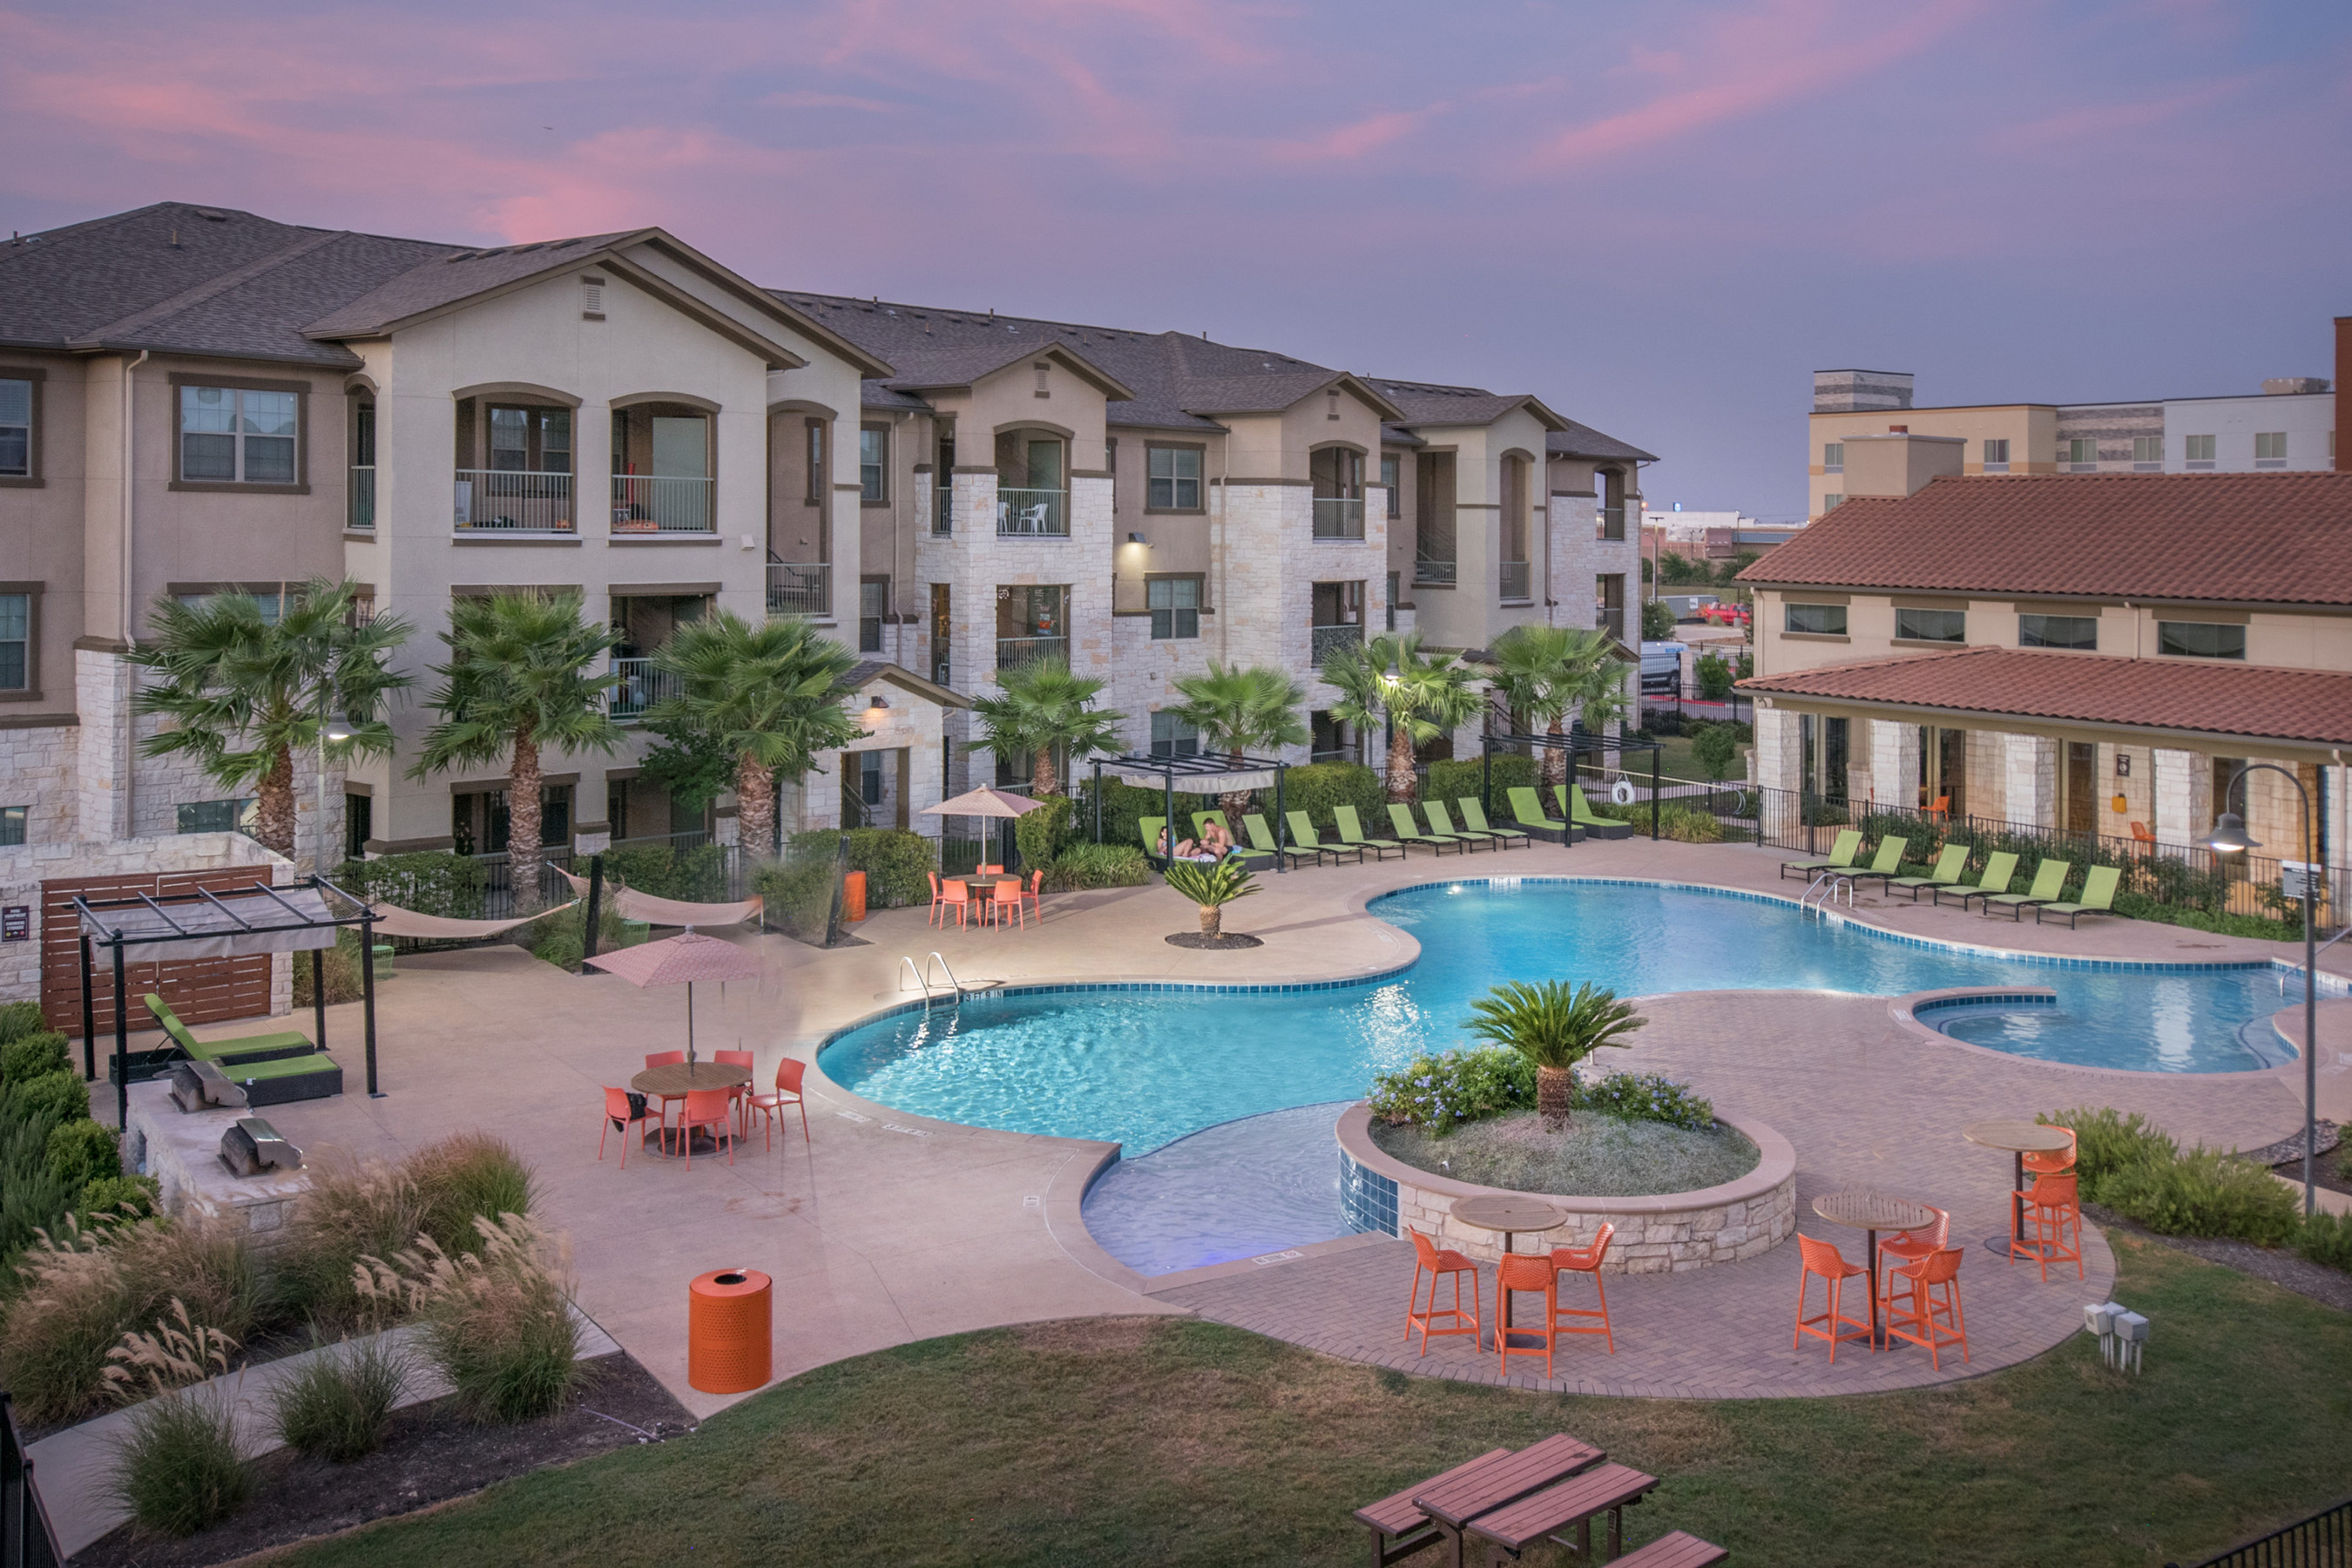 Olympus Property Acquires Carrington Oaks Apartment Community in Austin, Texas Suburb